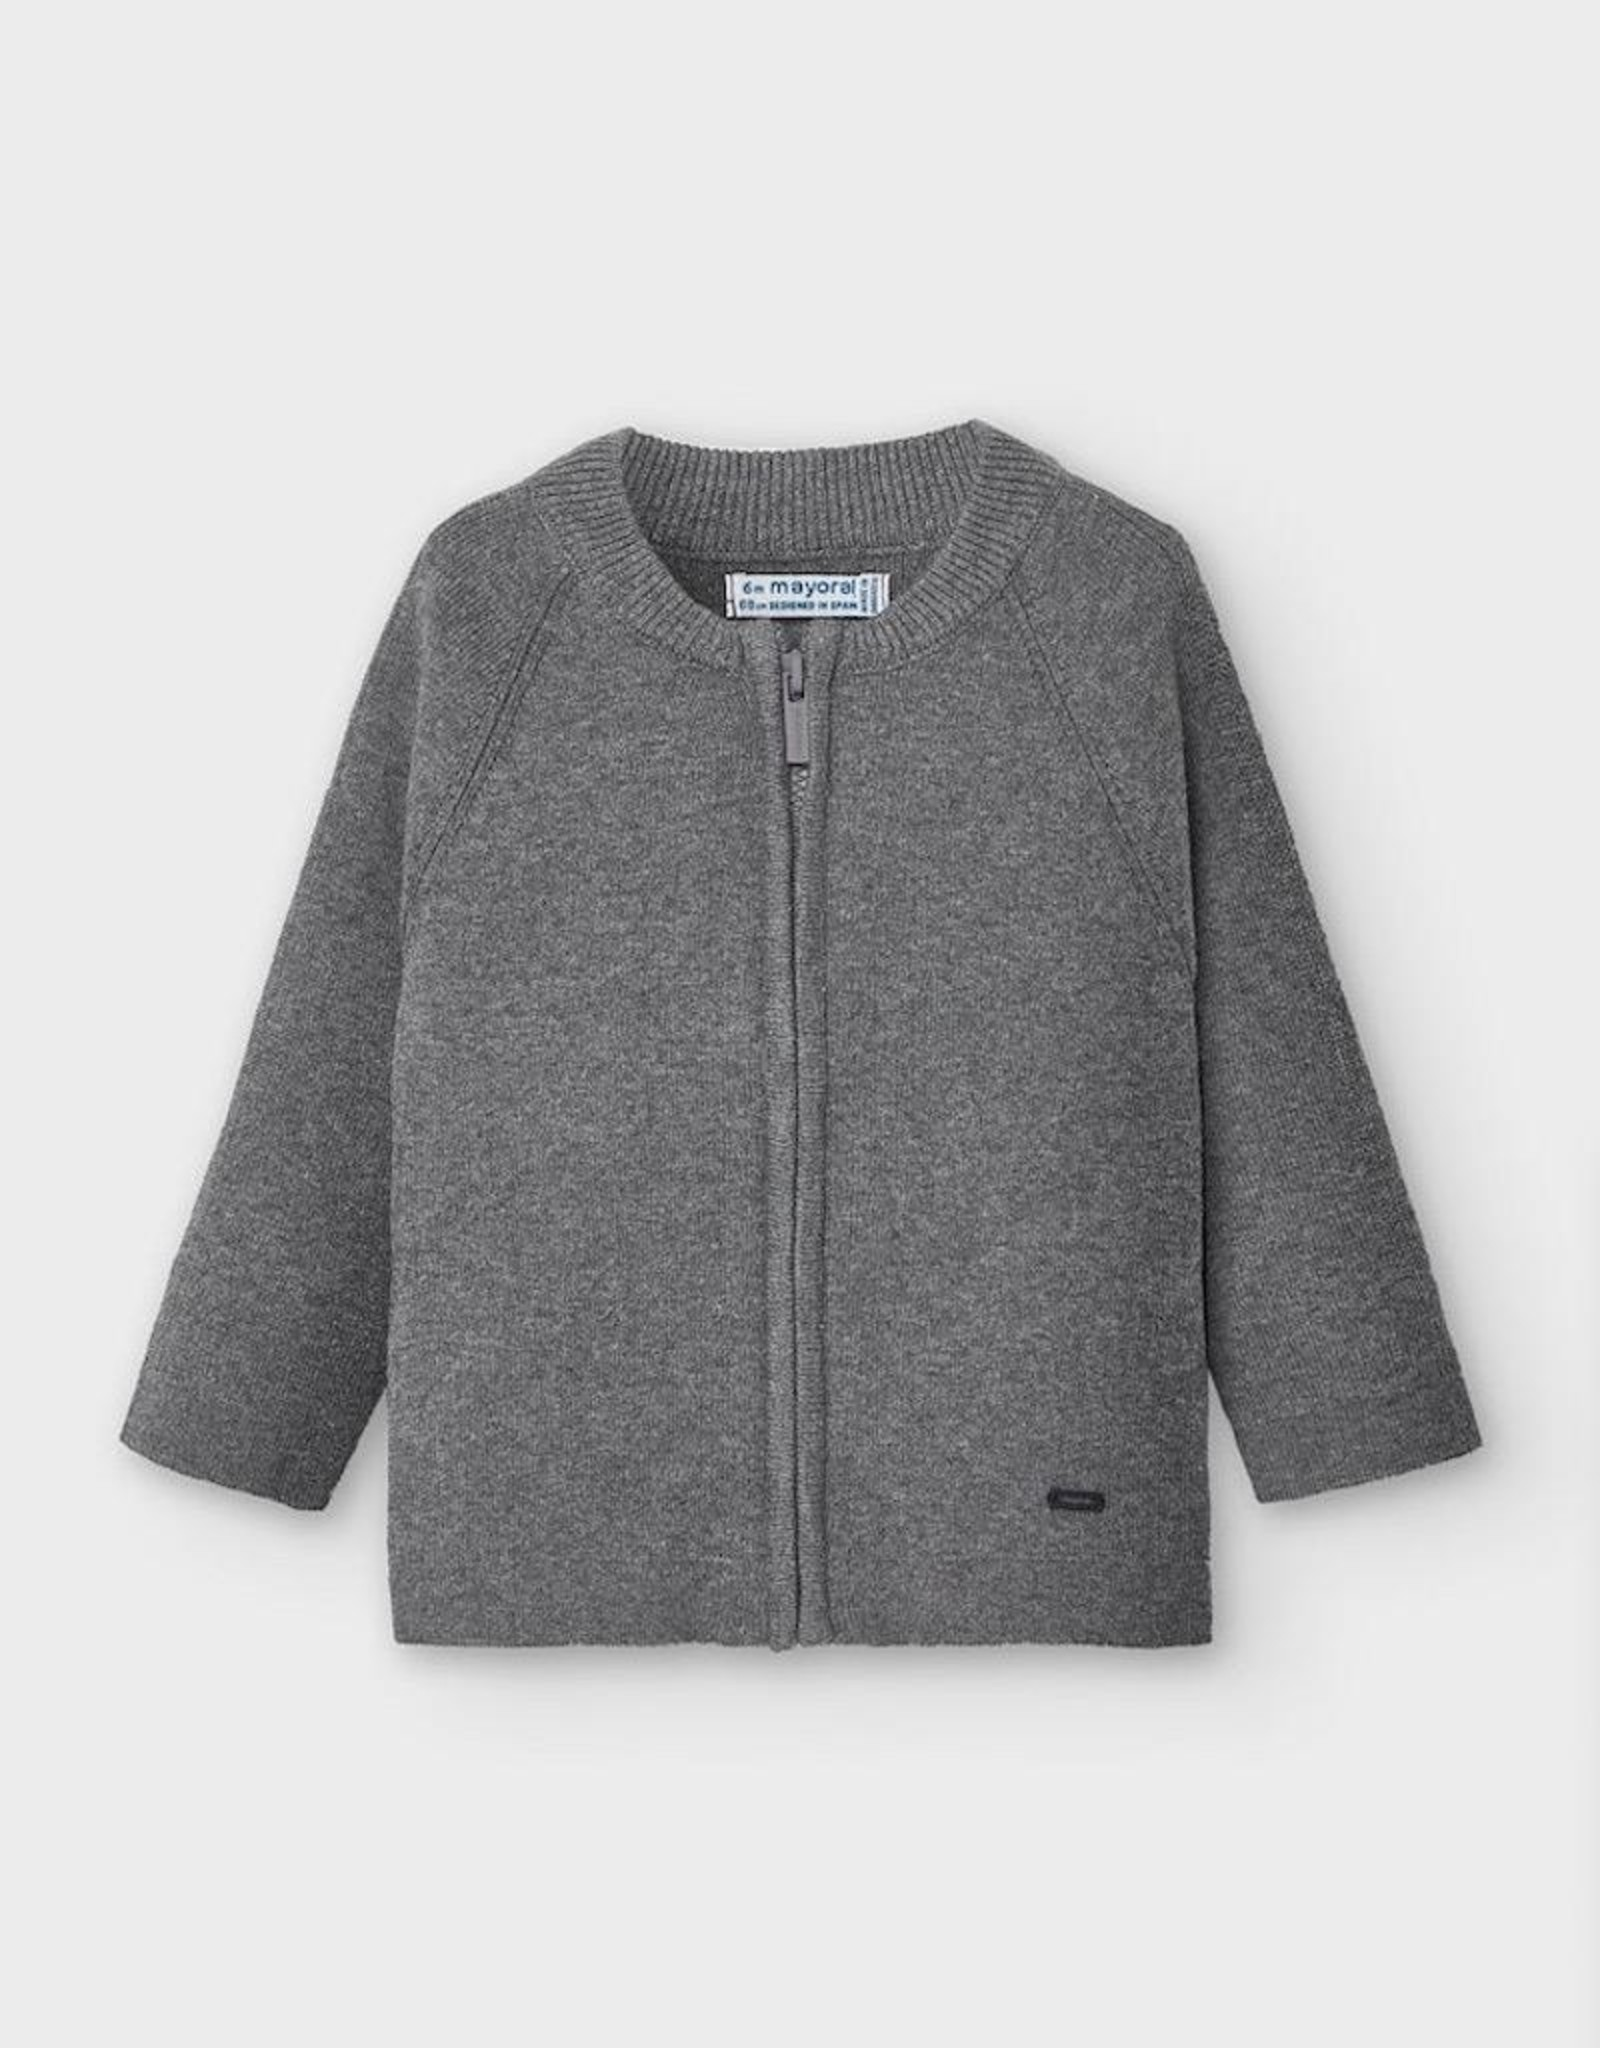 Mayoral Woven Knit Jacket in Cement